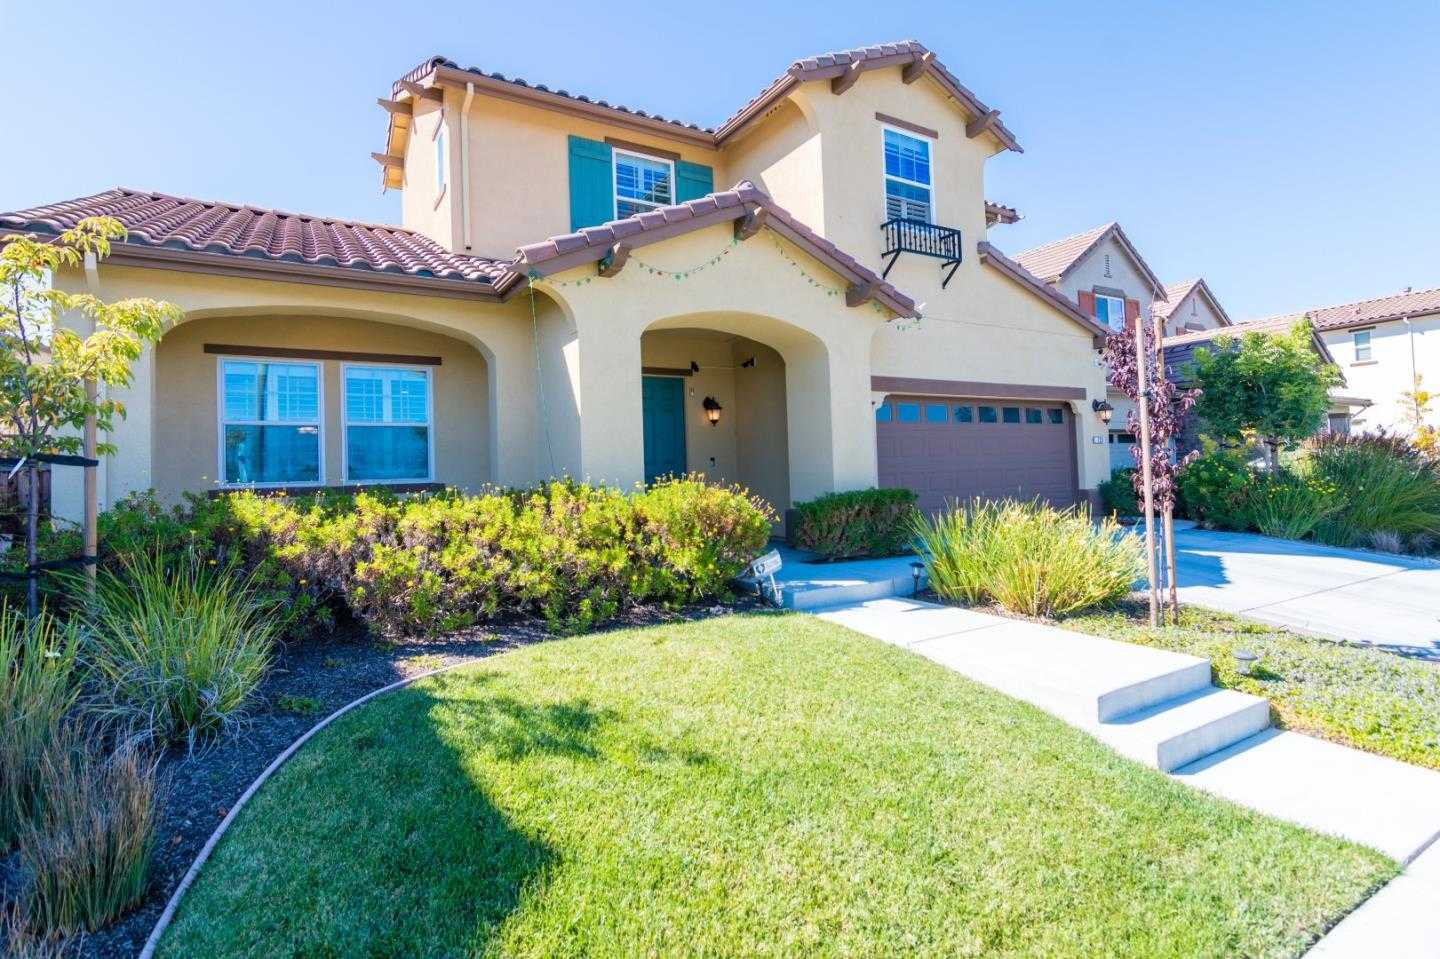 $2,488,000 - 4Br/3Ba -  for Sale in Sunnyvale